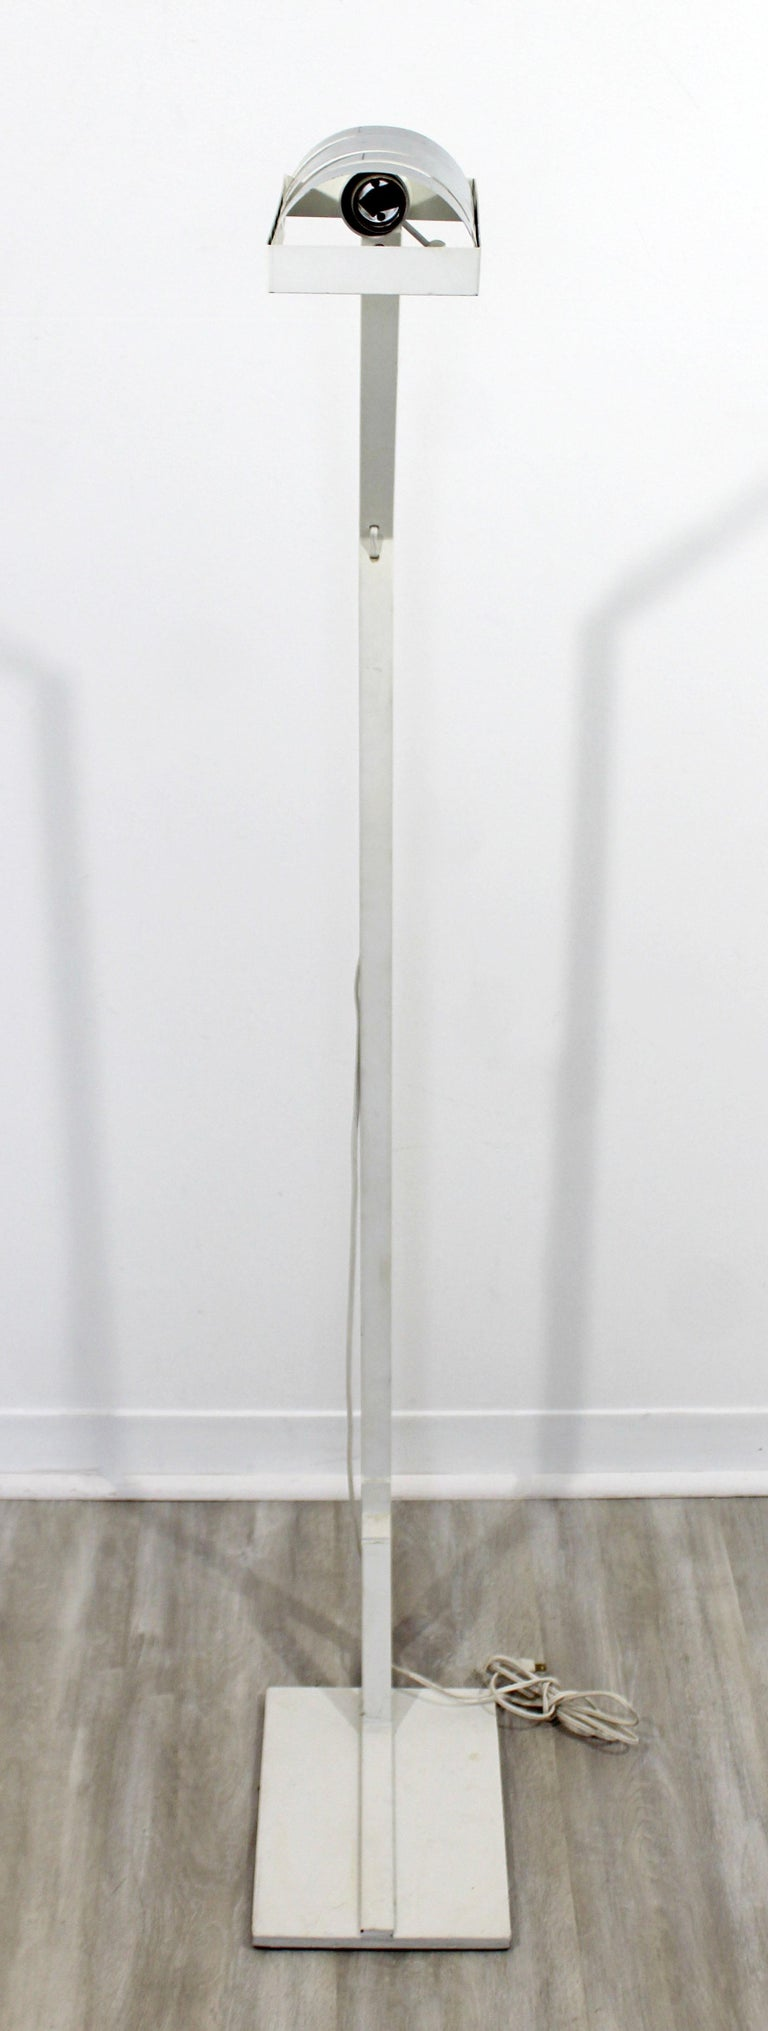 Mid-Century Modern Chrome and White Metal Adjustable Reading Floor Lamp, 1970s In Good Condition For Sale In Keego Harbor, MI